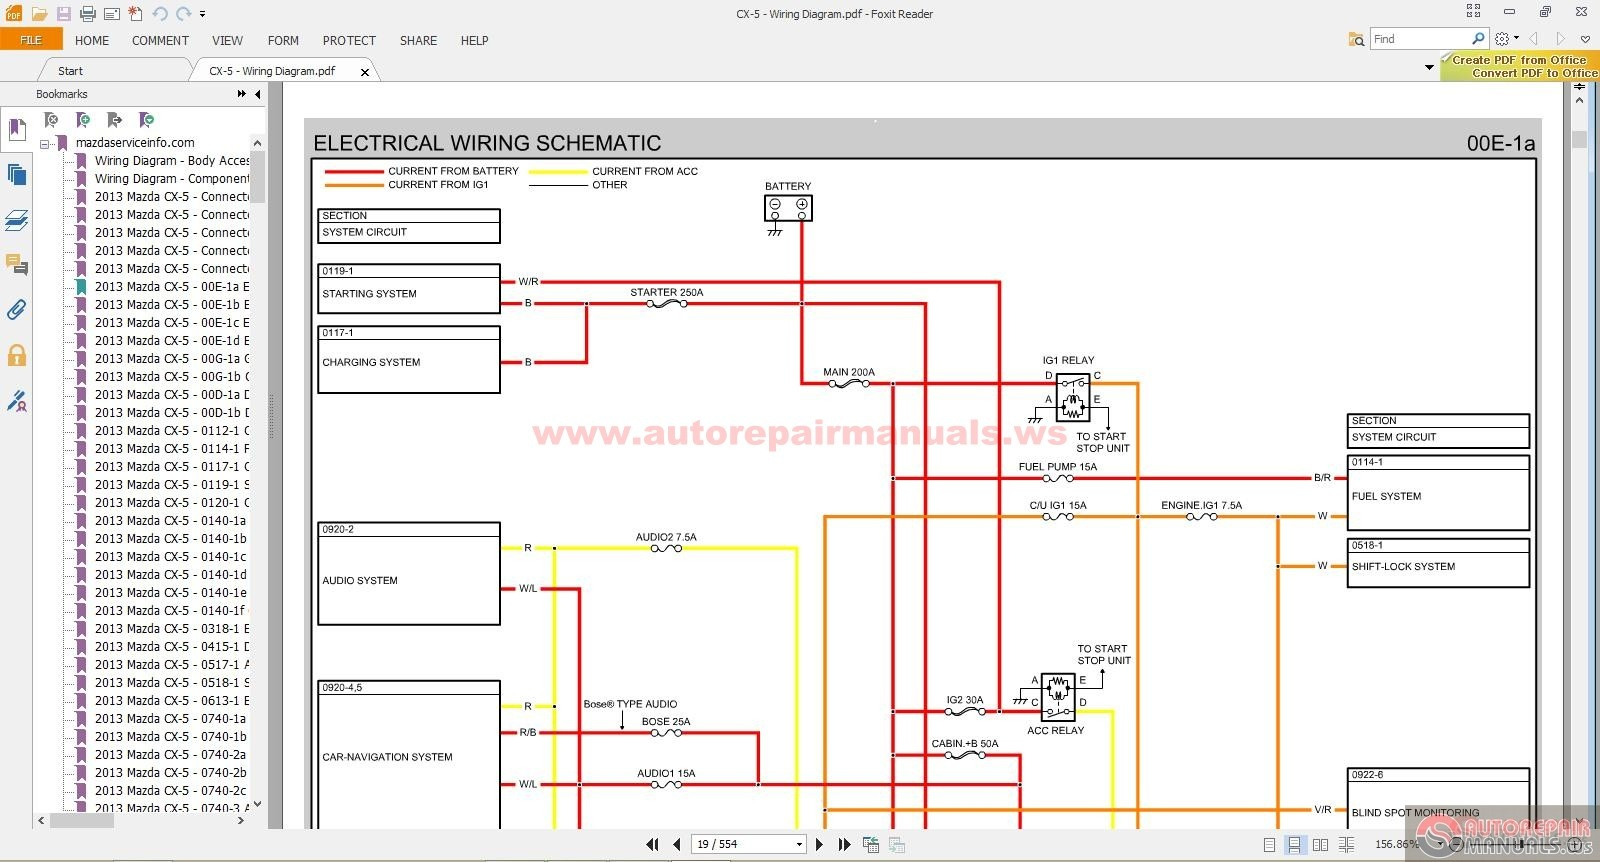 Hino 268 Fuse Box Diagram 25 Wiring Images Truck Mazda Cx 5 2013 Workshop Manual5 Diagrams On Free Download